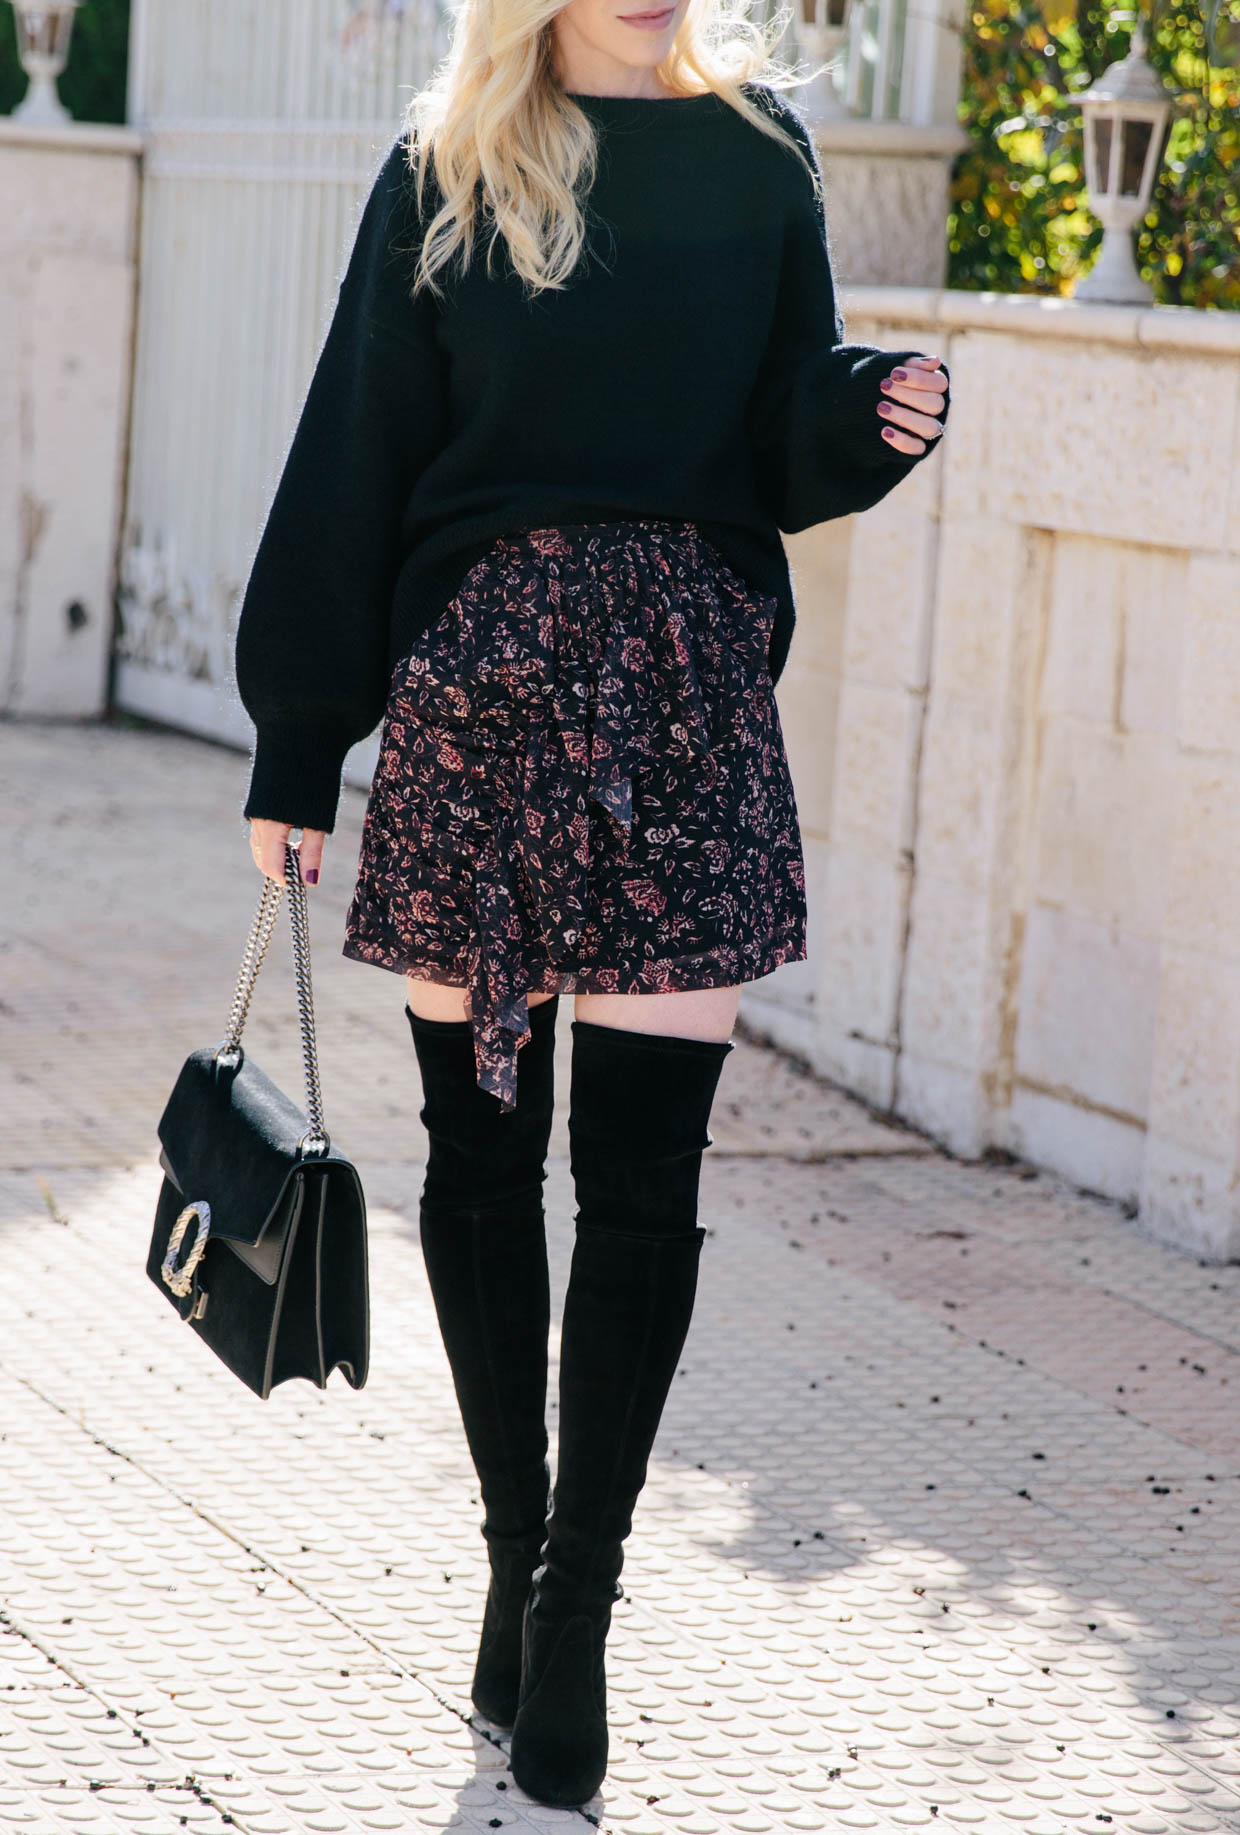 bd42293cde843 How to wear a floral print ruffle mini skirt with black suede over the knee  boots and Gucci Dionysus bag